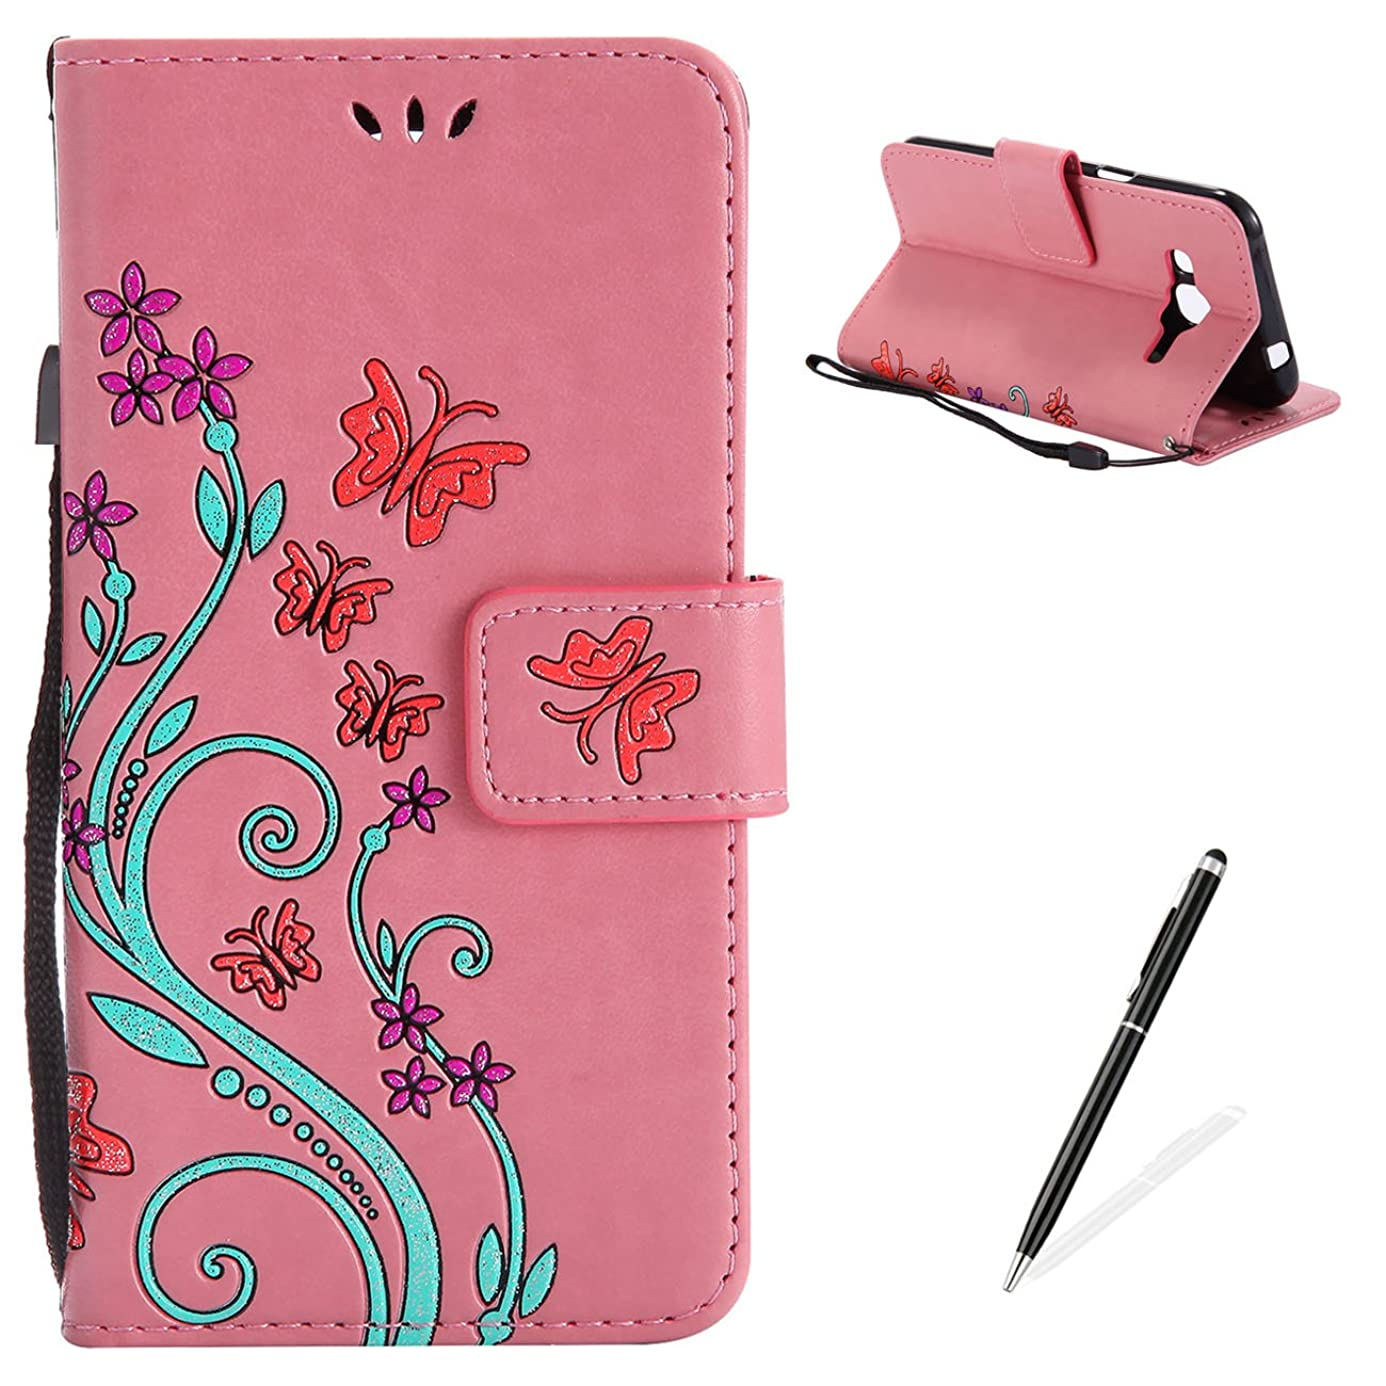 MAGQI Samsung Galaxy J2 Case, Premium Slim Fit Flip PU Leather Stand Wallet Book Style Case with Card Slots Magnetic Closure Embossed Rose Flower Butterfly Pattern Cover